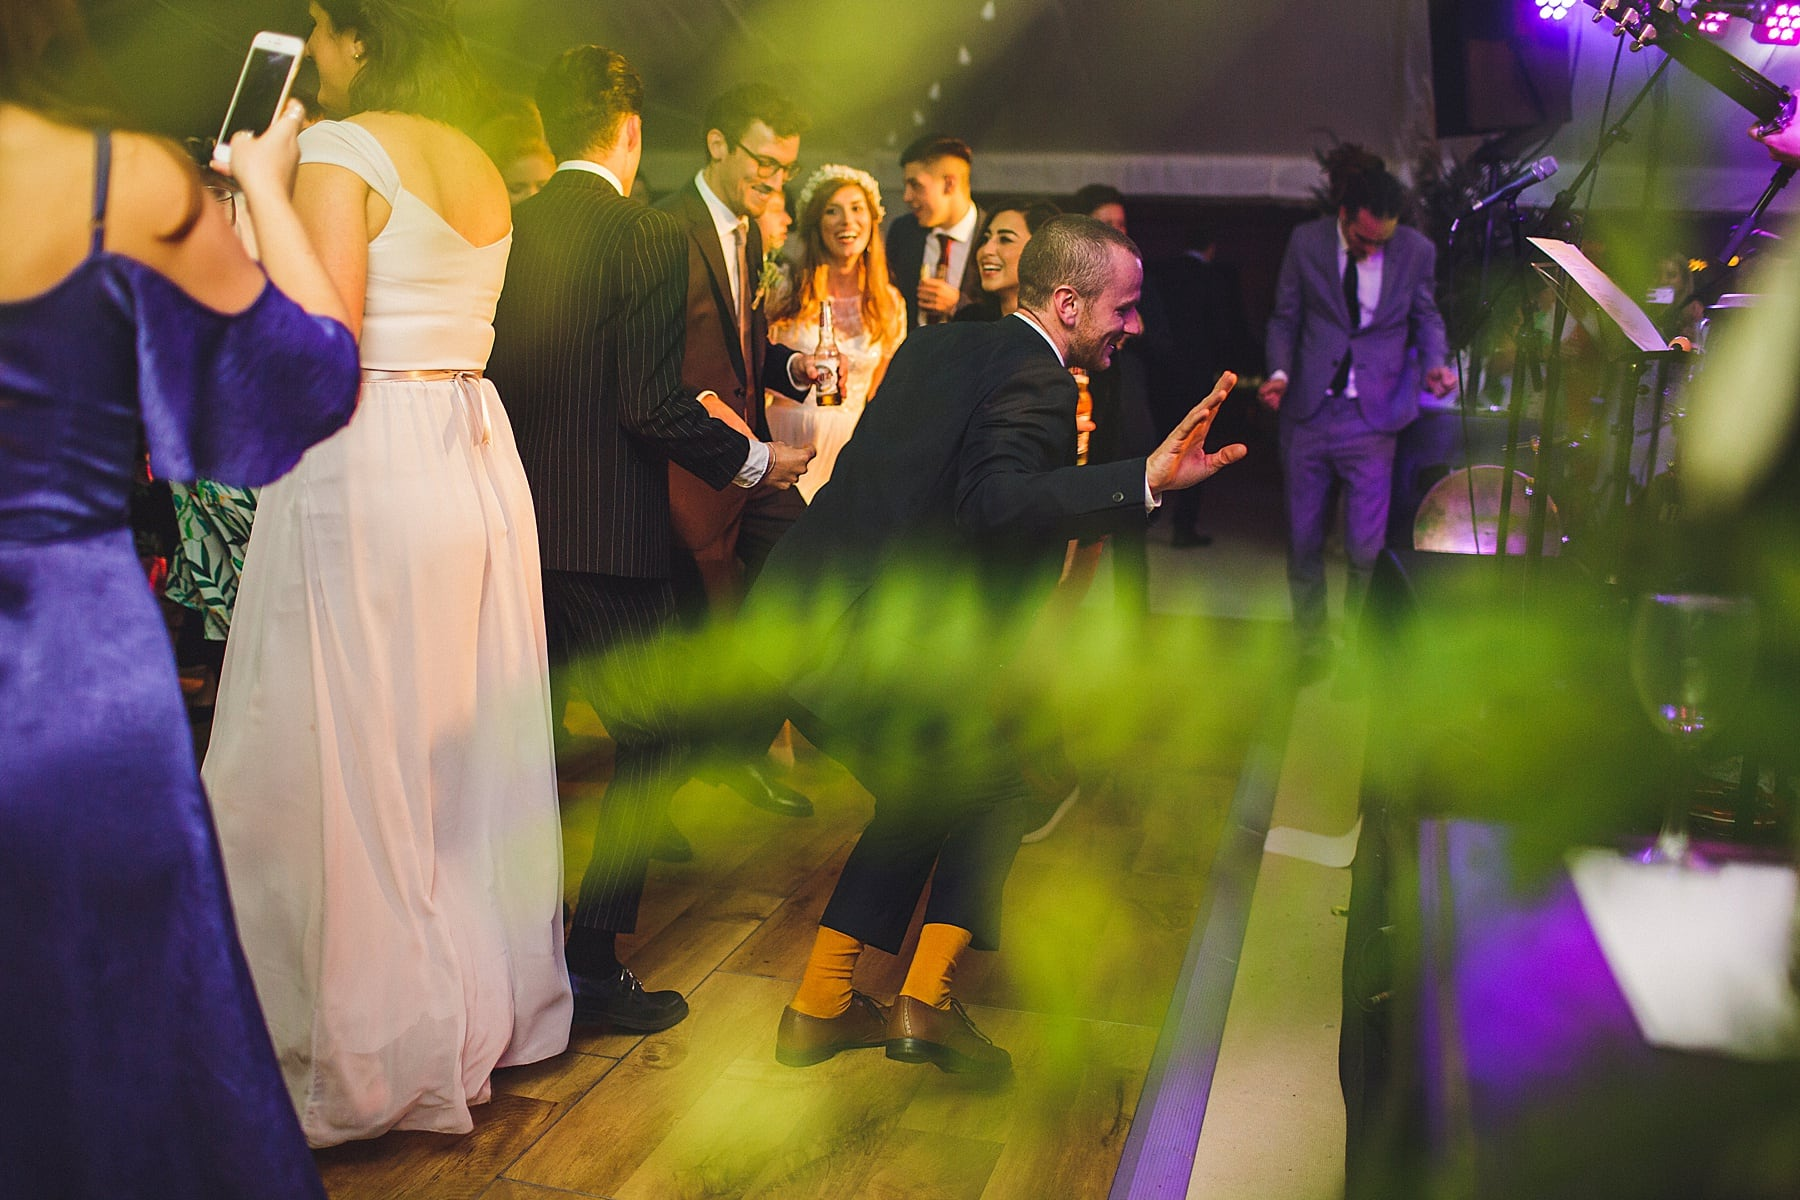 Irish wedding photographer,bride and groom,dancing,fun,laughter,marquee inspiration,